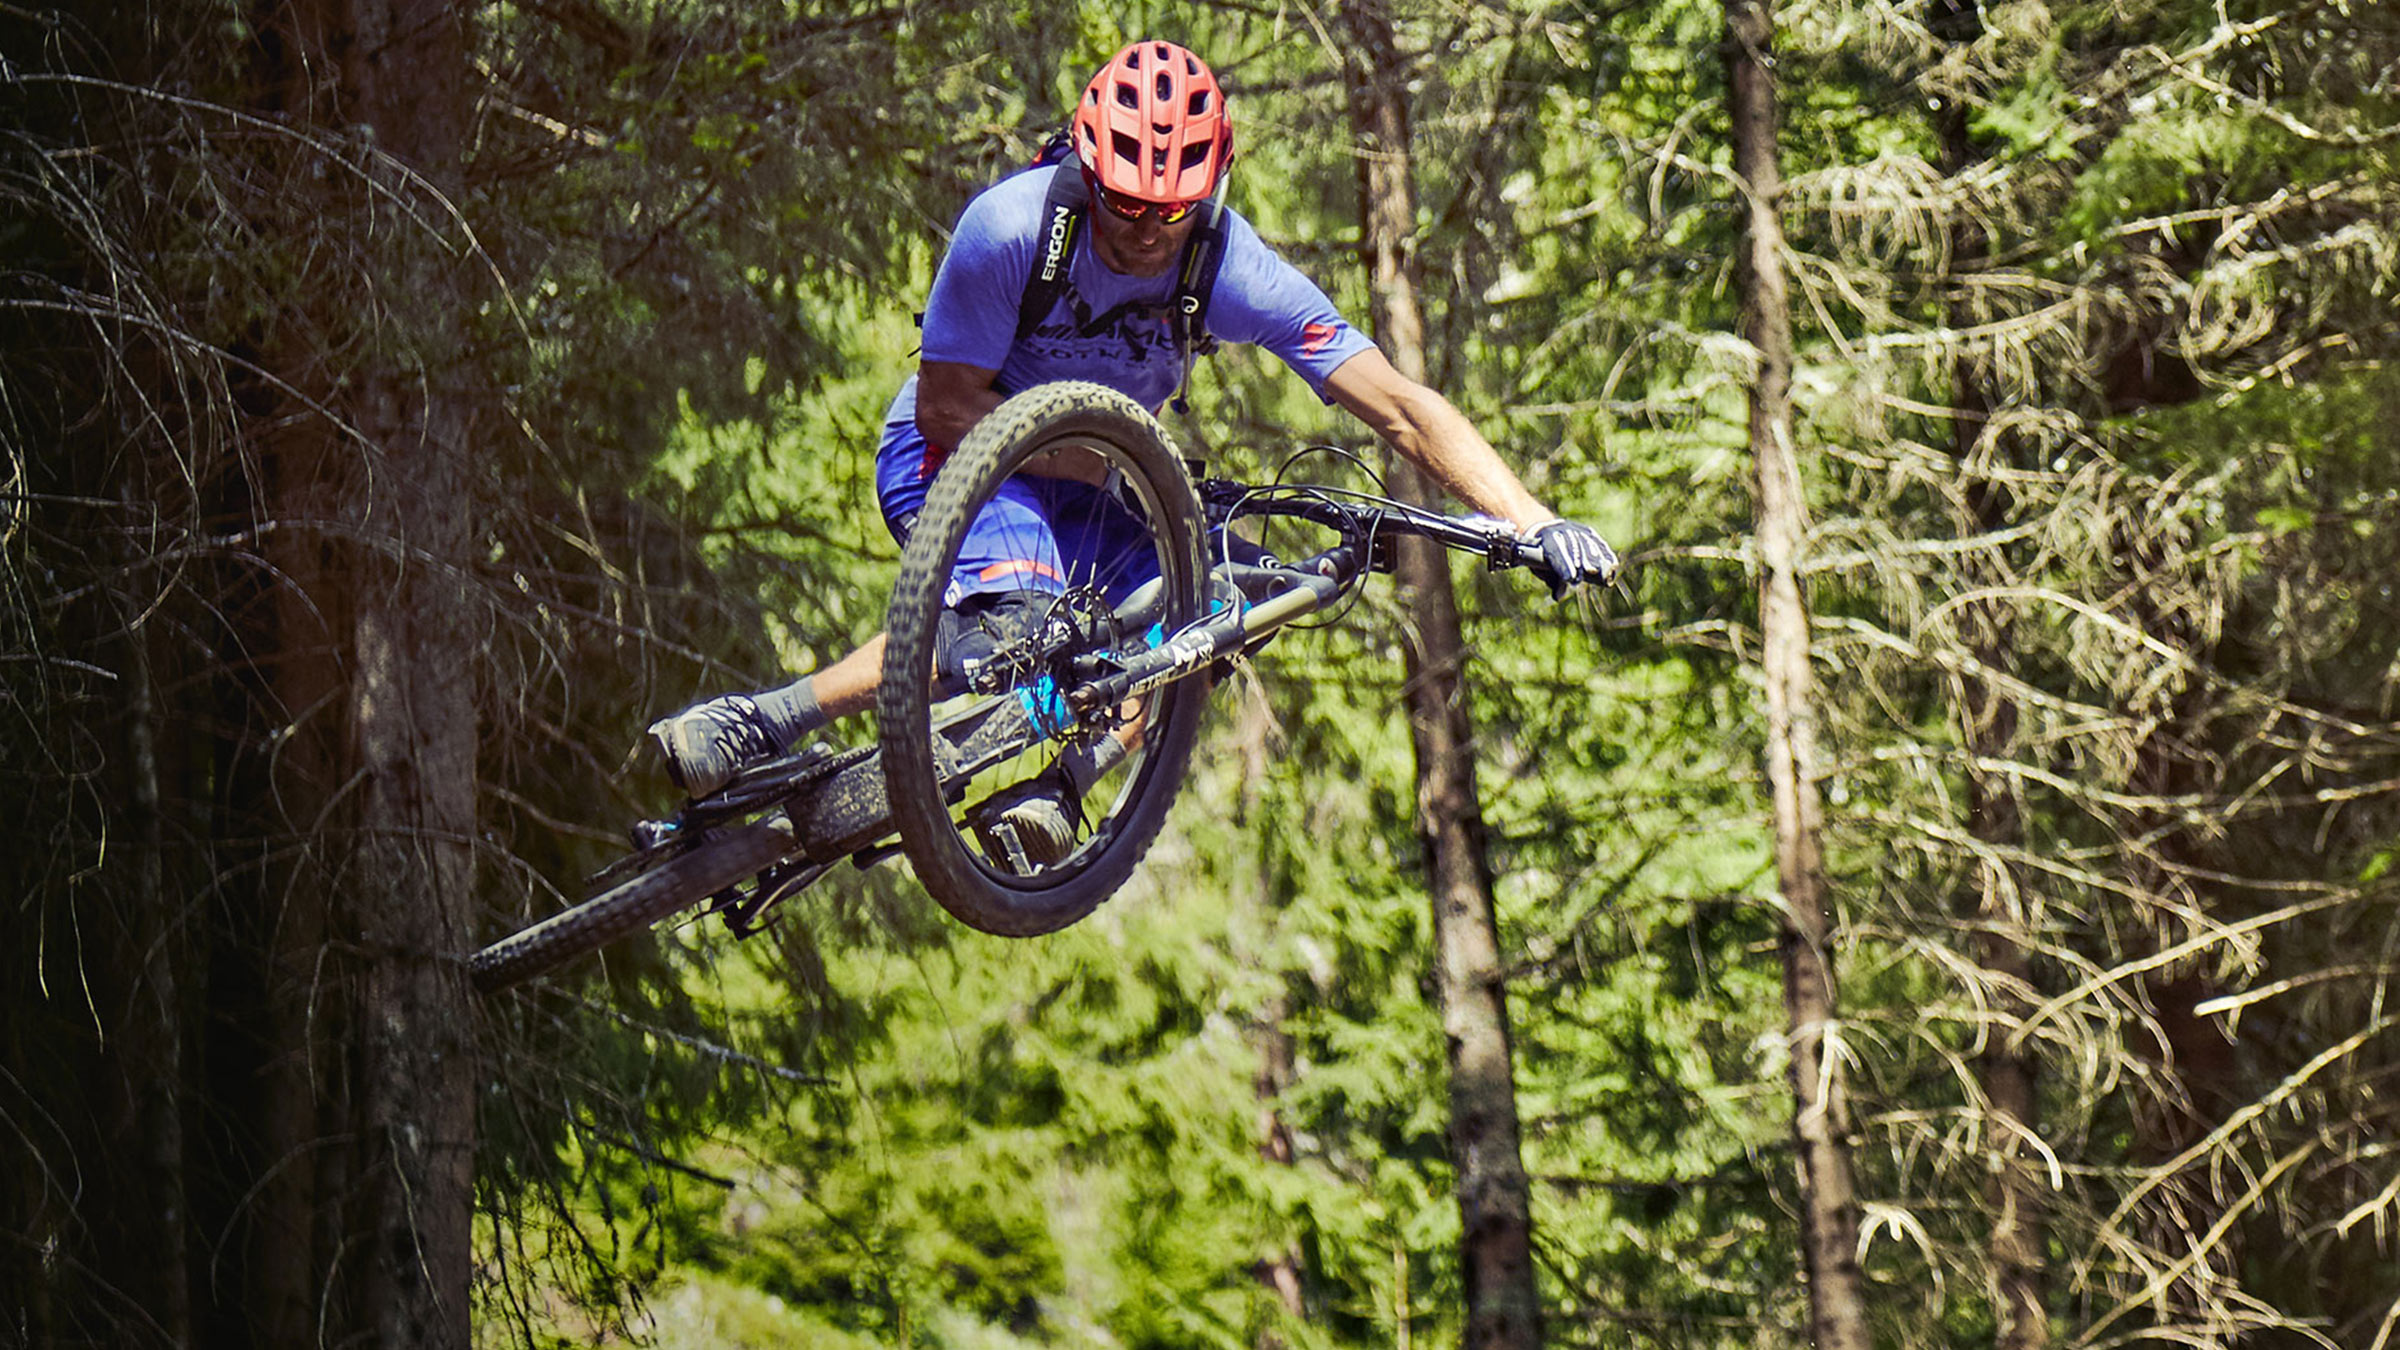 Richie Schley mid-ar during a jump in a forest.